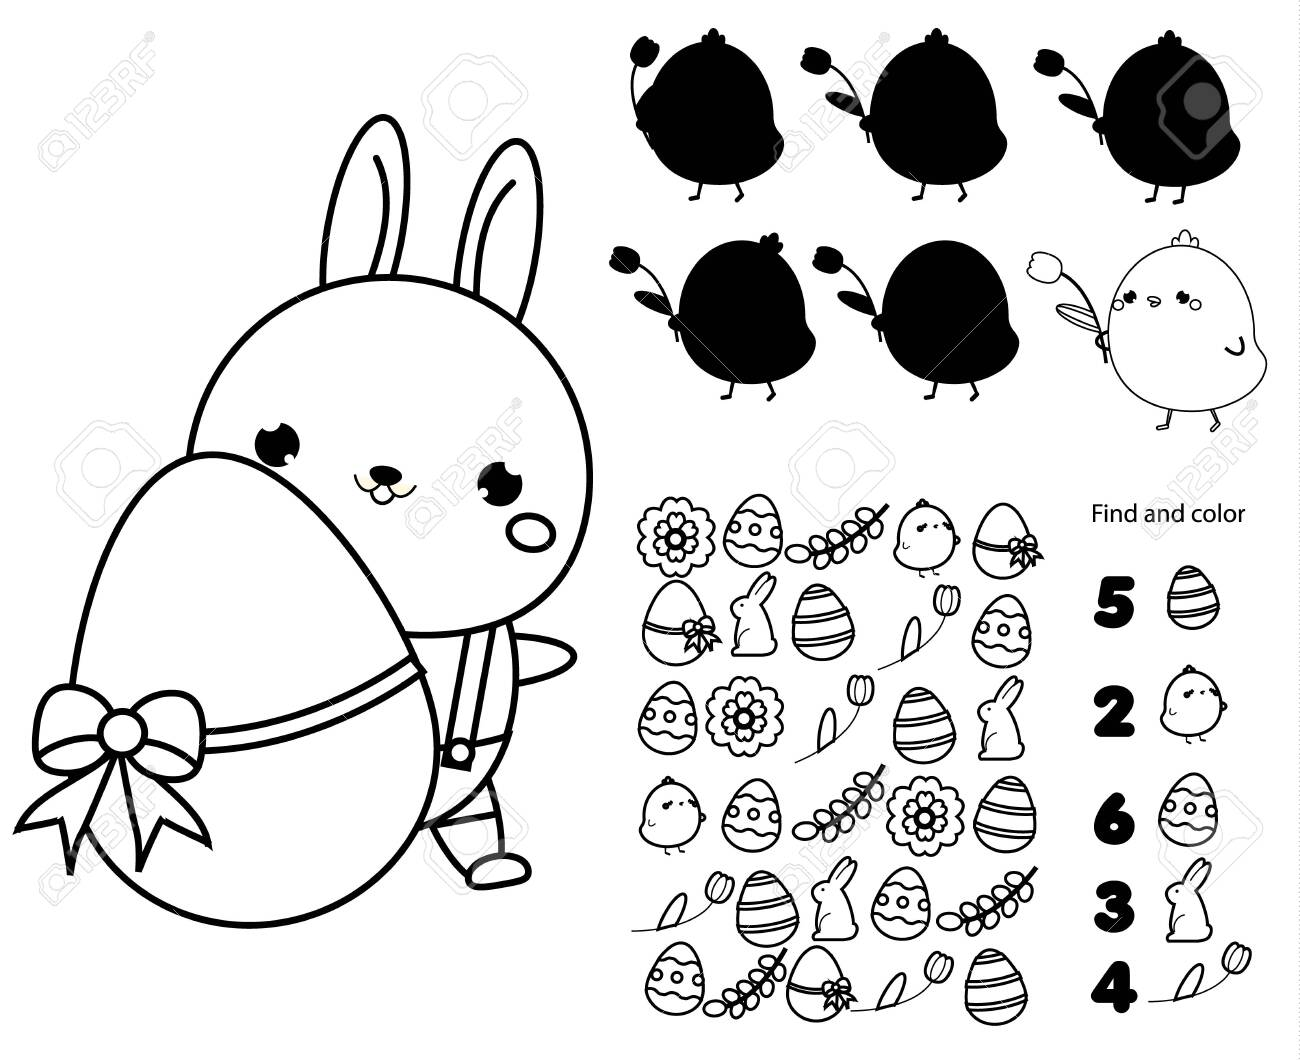 image about I Spy Printable Worksheets referred to as Easter match web site for youngsters. Enlightening kids match preset